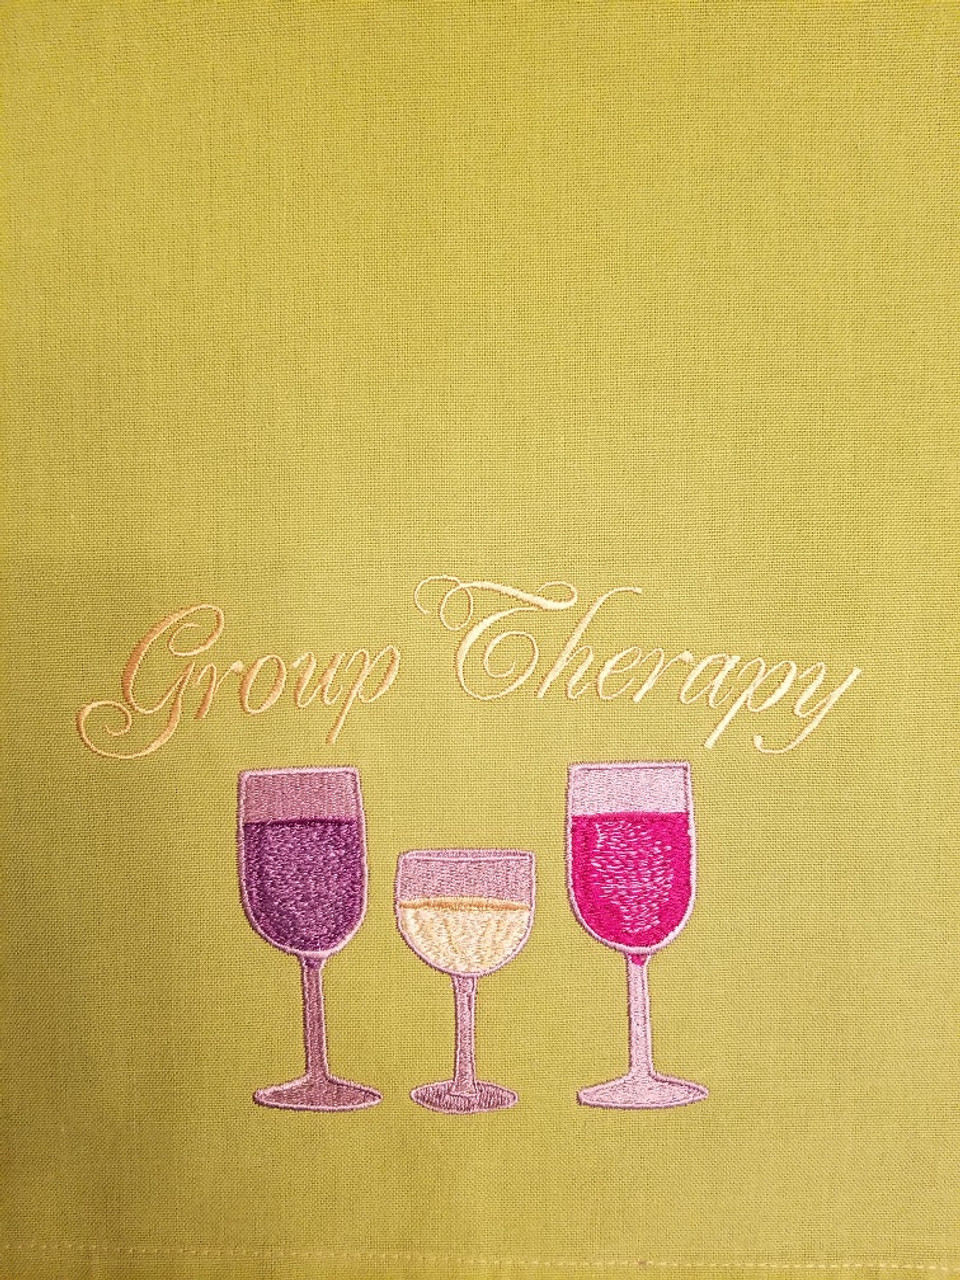 """Group Therapy 1 - Kitchen Towel - 20"""" x 28"""" Embroidery on a lime colored towel. 100% Cotton with loop, for optional hanging. Machine washable in cool water and tumble dry at low temperature. Minimal shrinkage. Size: 20"""" x 28"""""""